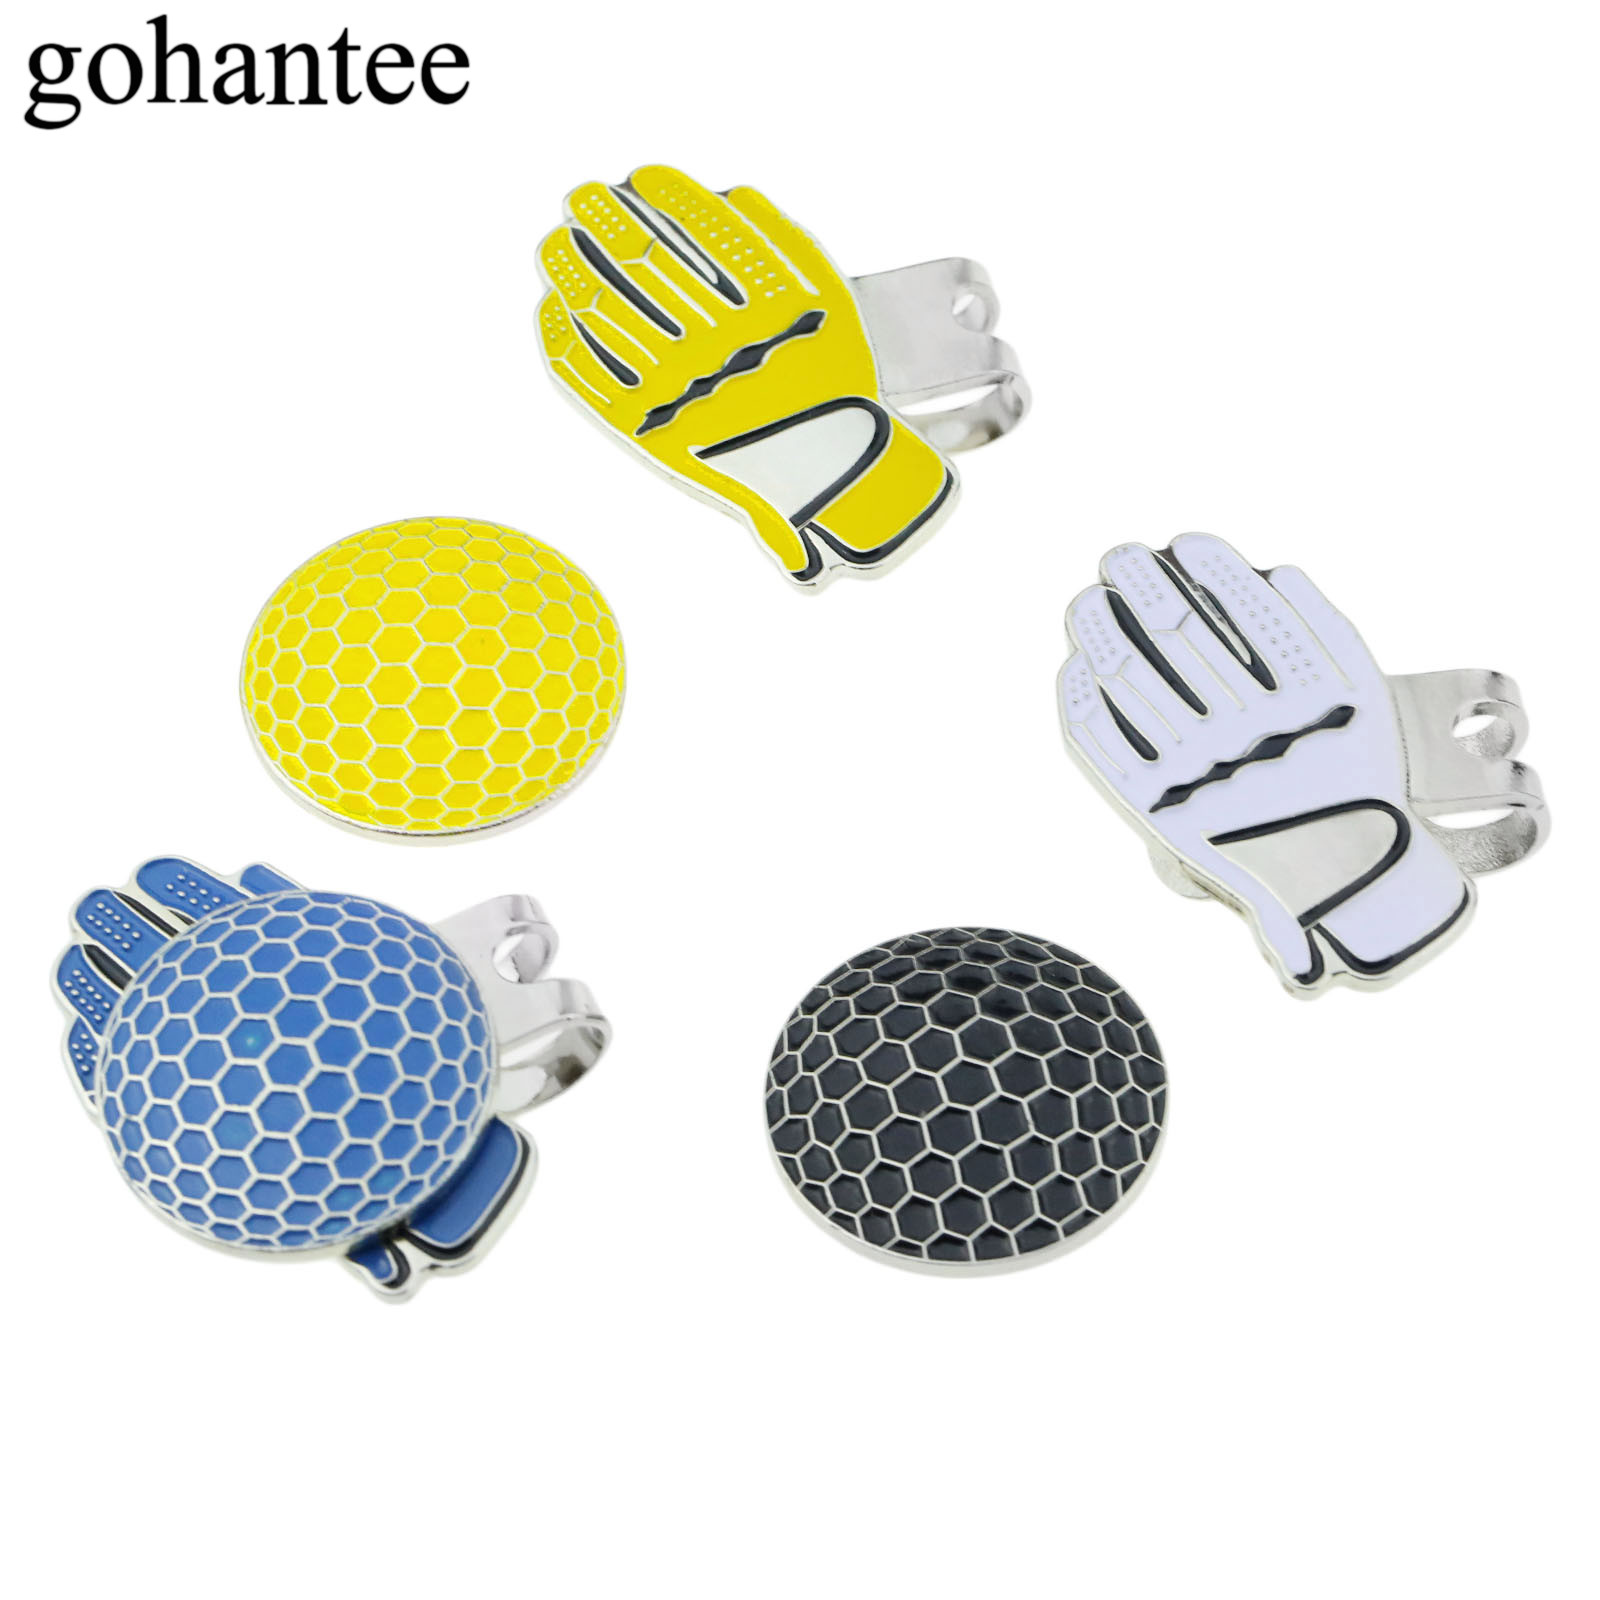 Gohantee Outdoor Sports Gloves Shape Golf Hat Visor Clips With Magnetic Golf Balls Mark Pocket Size Alloy Cap/ Hat Decoration